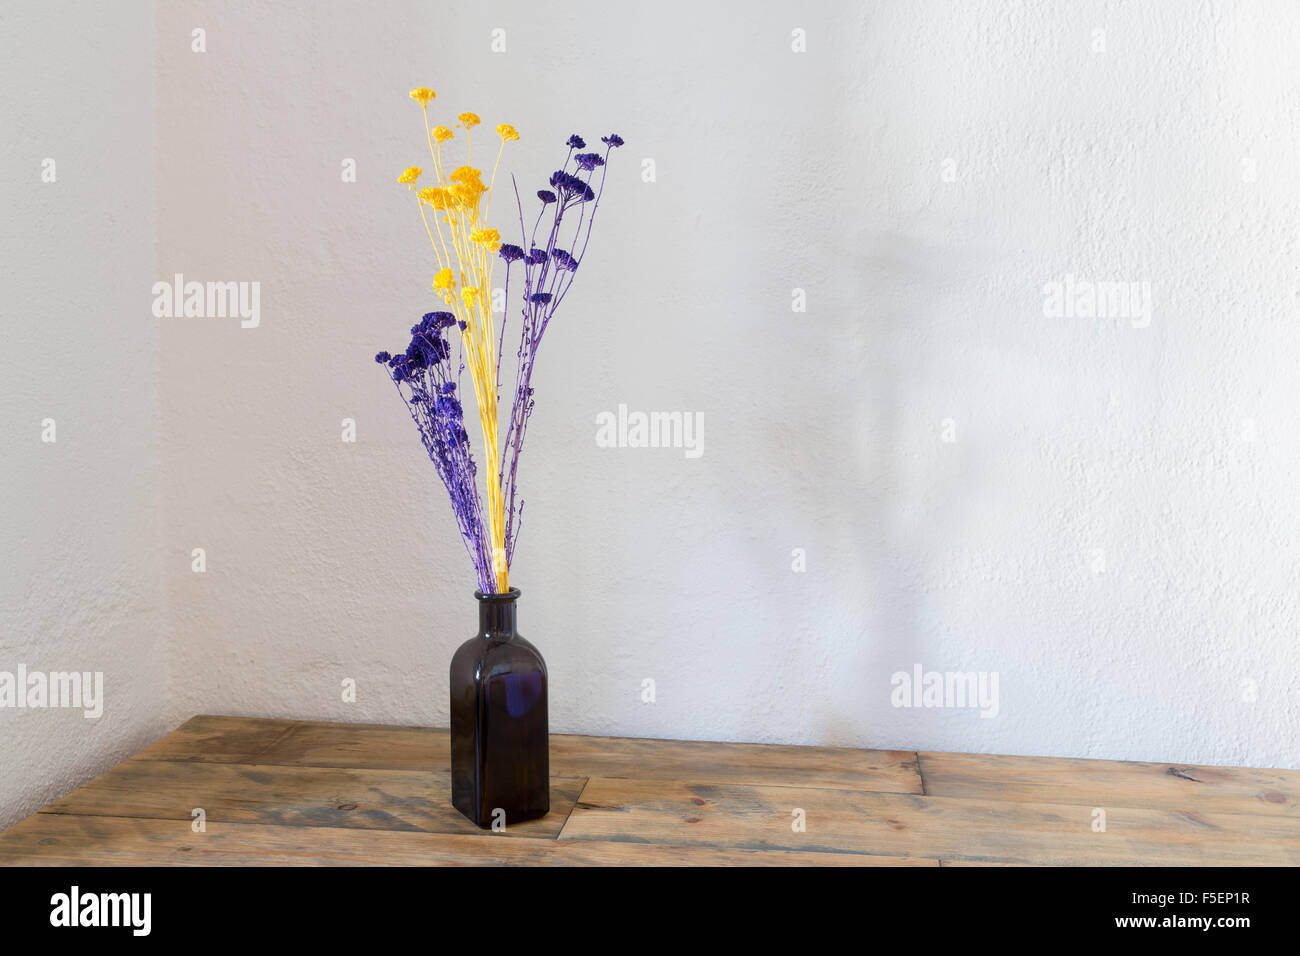 Purple and yellow dried flowers in blue bottle vase on an old wooden table Stock Photo